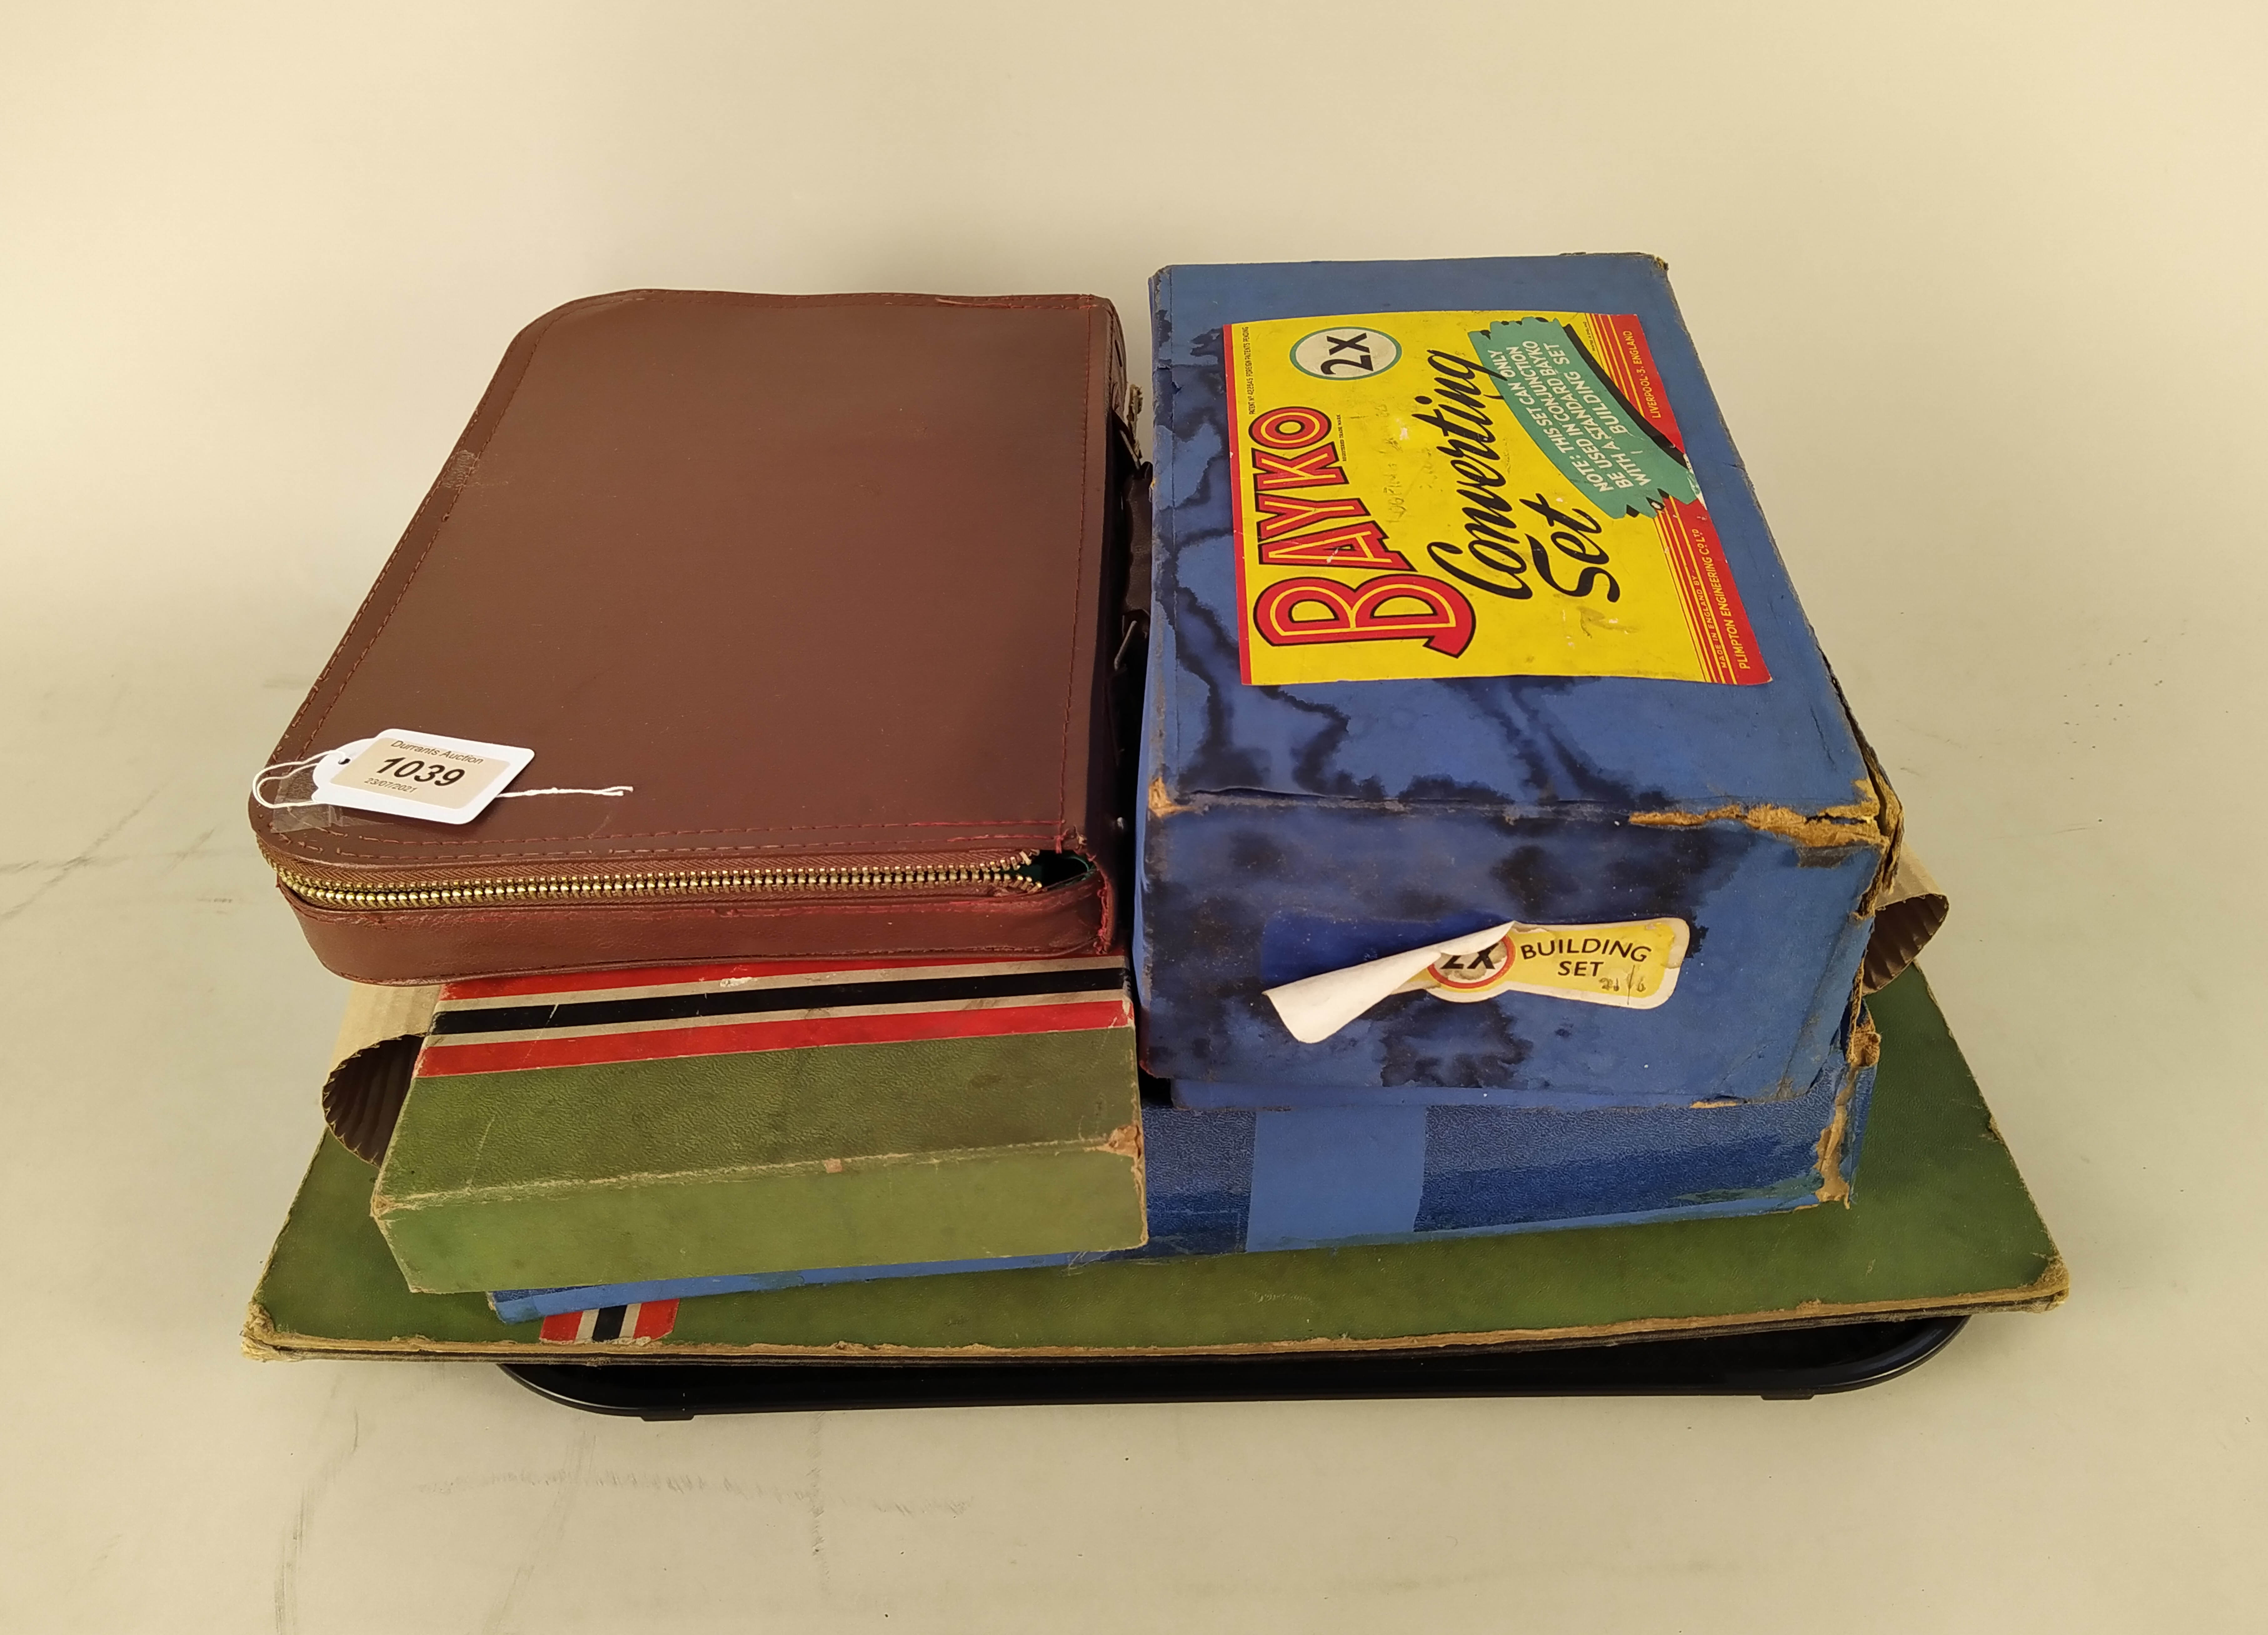 A vintage Totopoly game with board and two boxes of vintage 'Bayko' building sets plus a Mahjong - Image 3 of 3